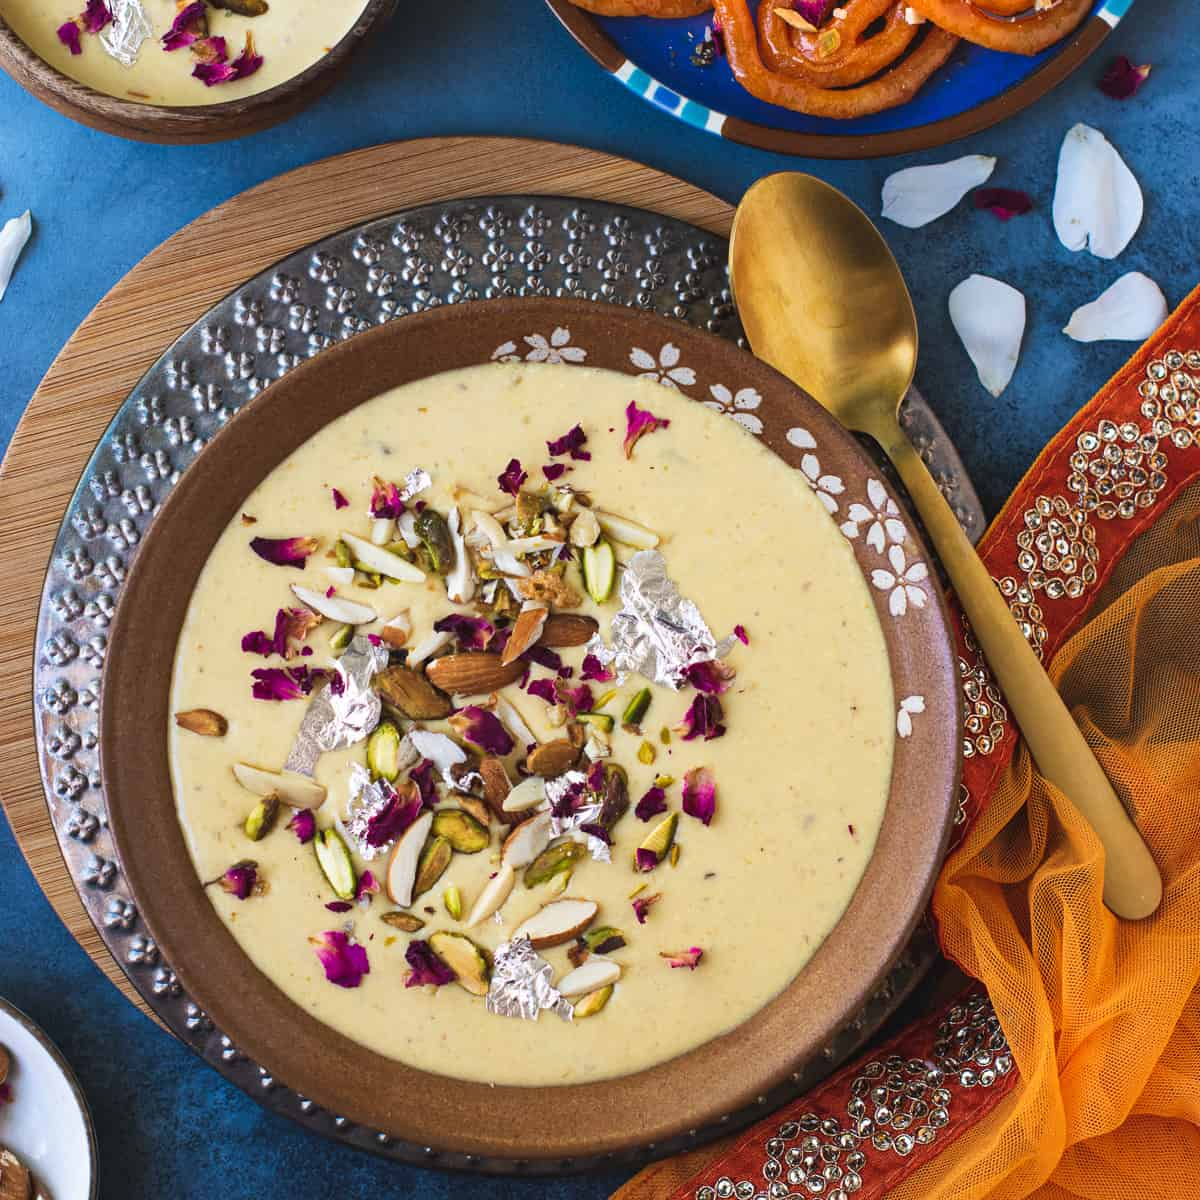 Instant Rabdi served with nuts and rose petals on top